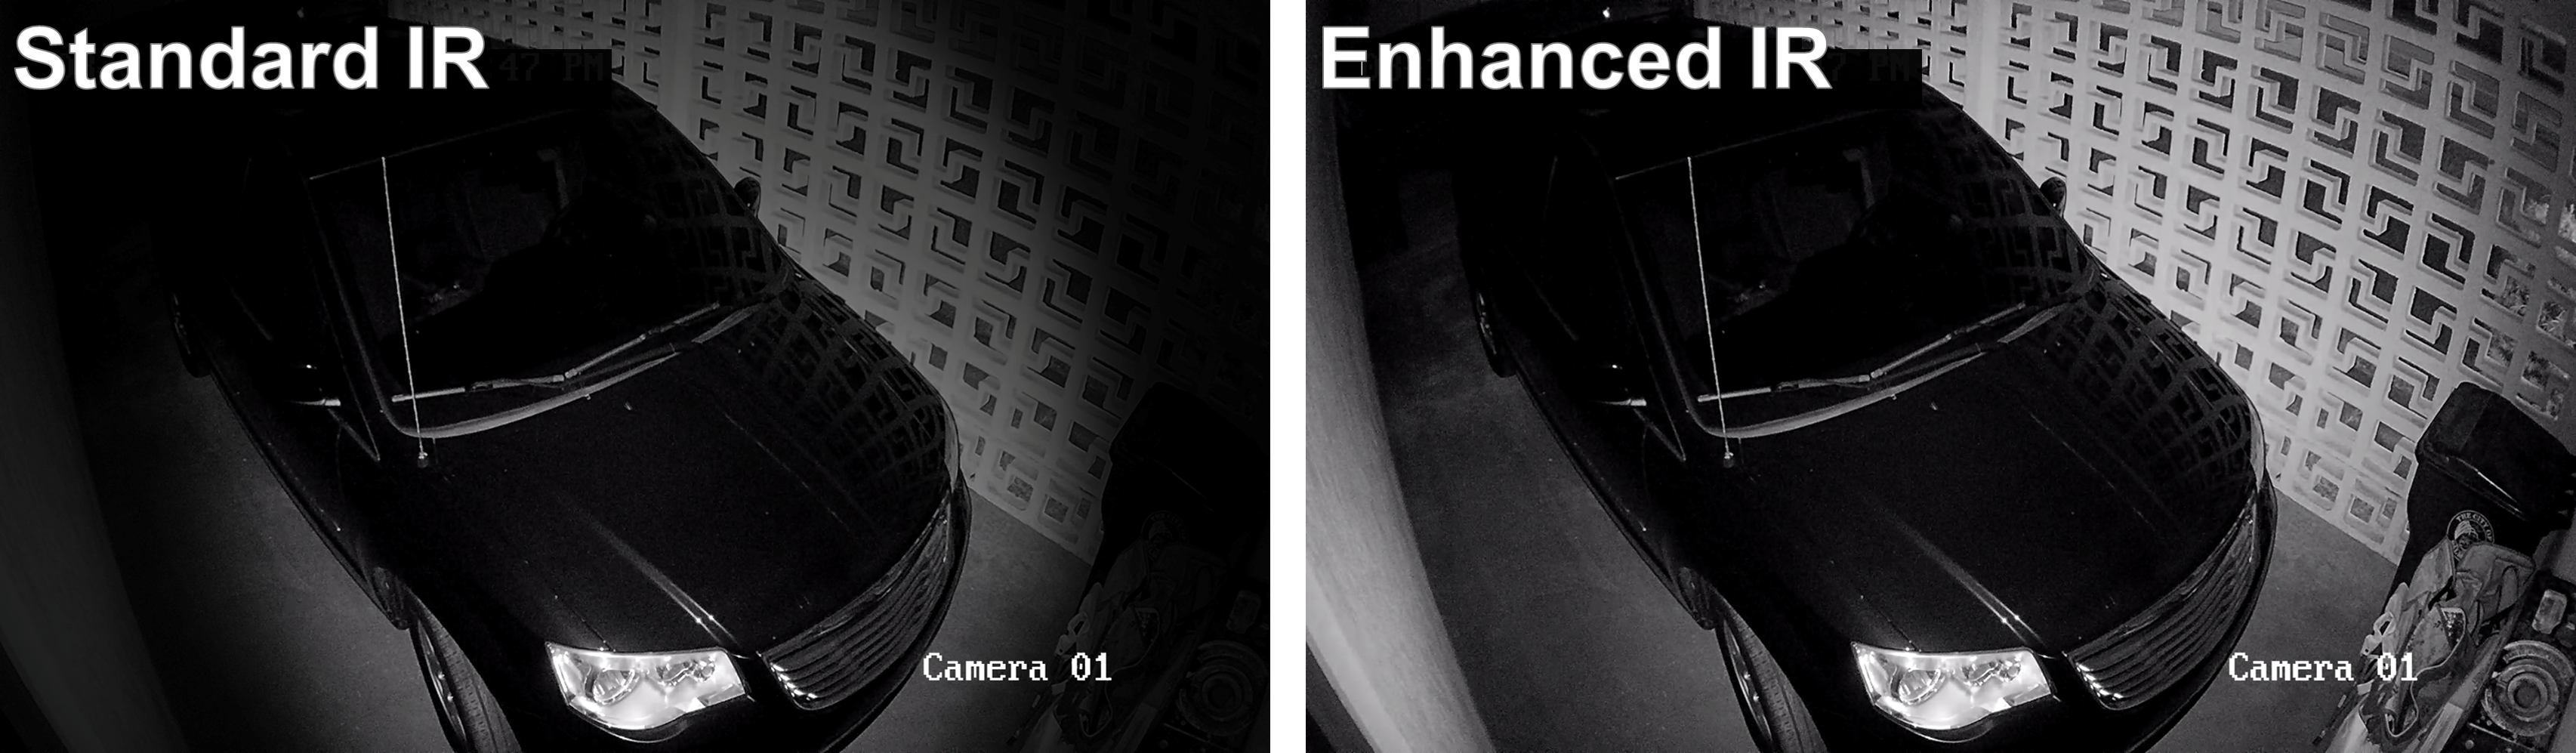 Camera Enhanced IR Comparison (Garage)